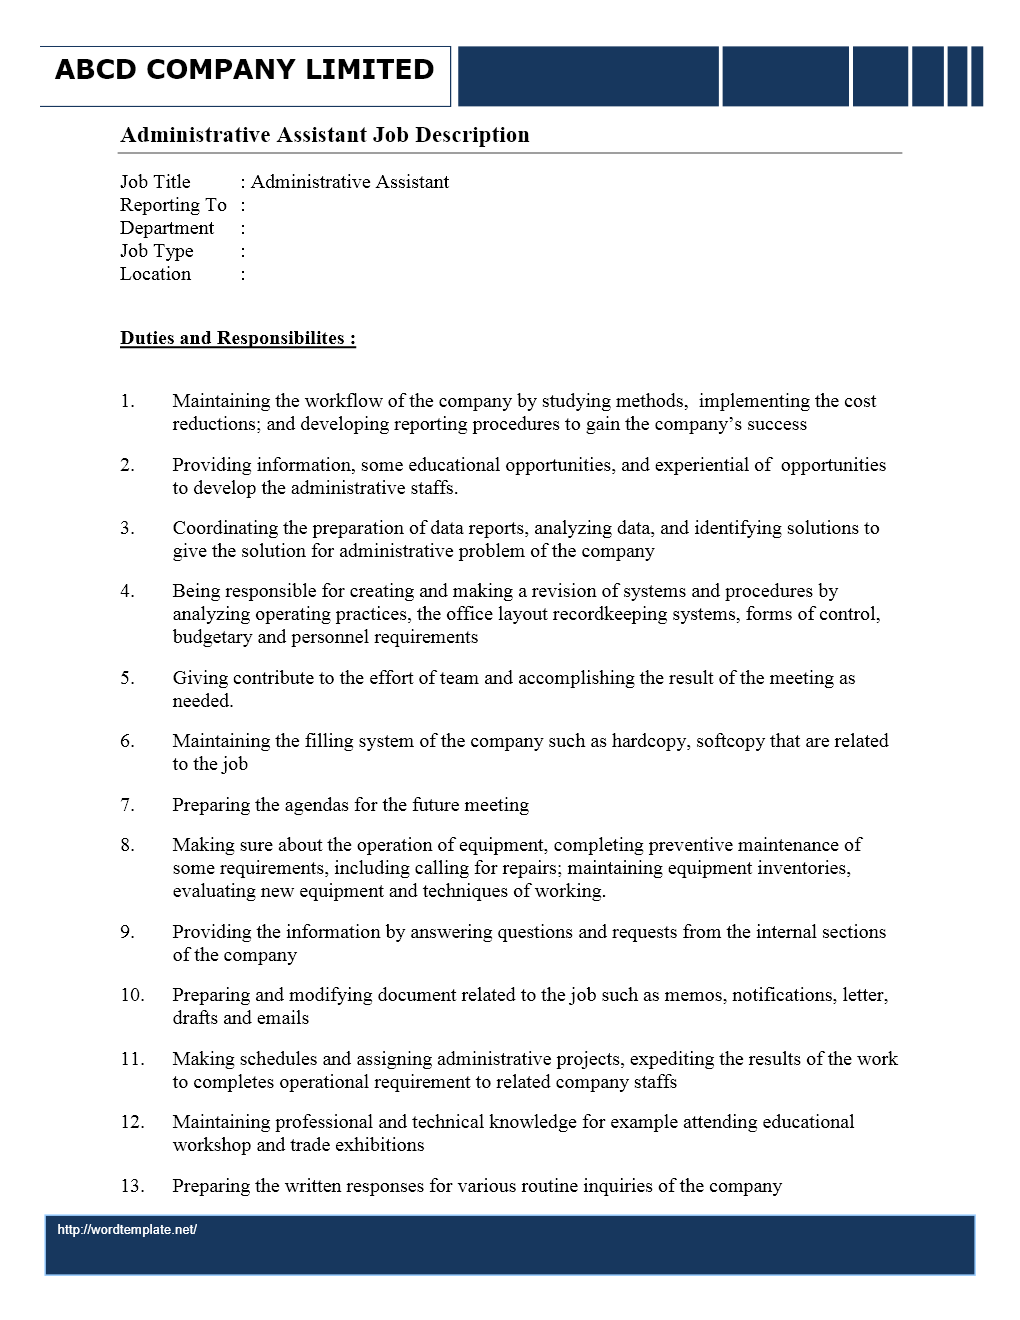 Administrative Assistant Job Description Sample | Cover Letter And ...